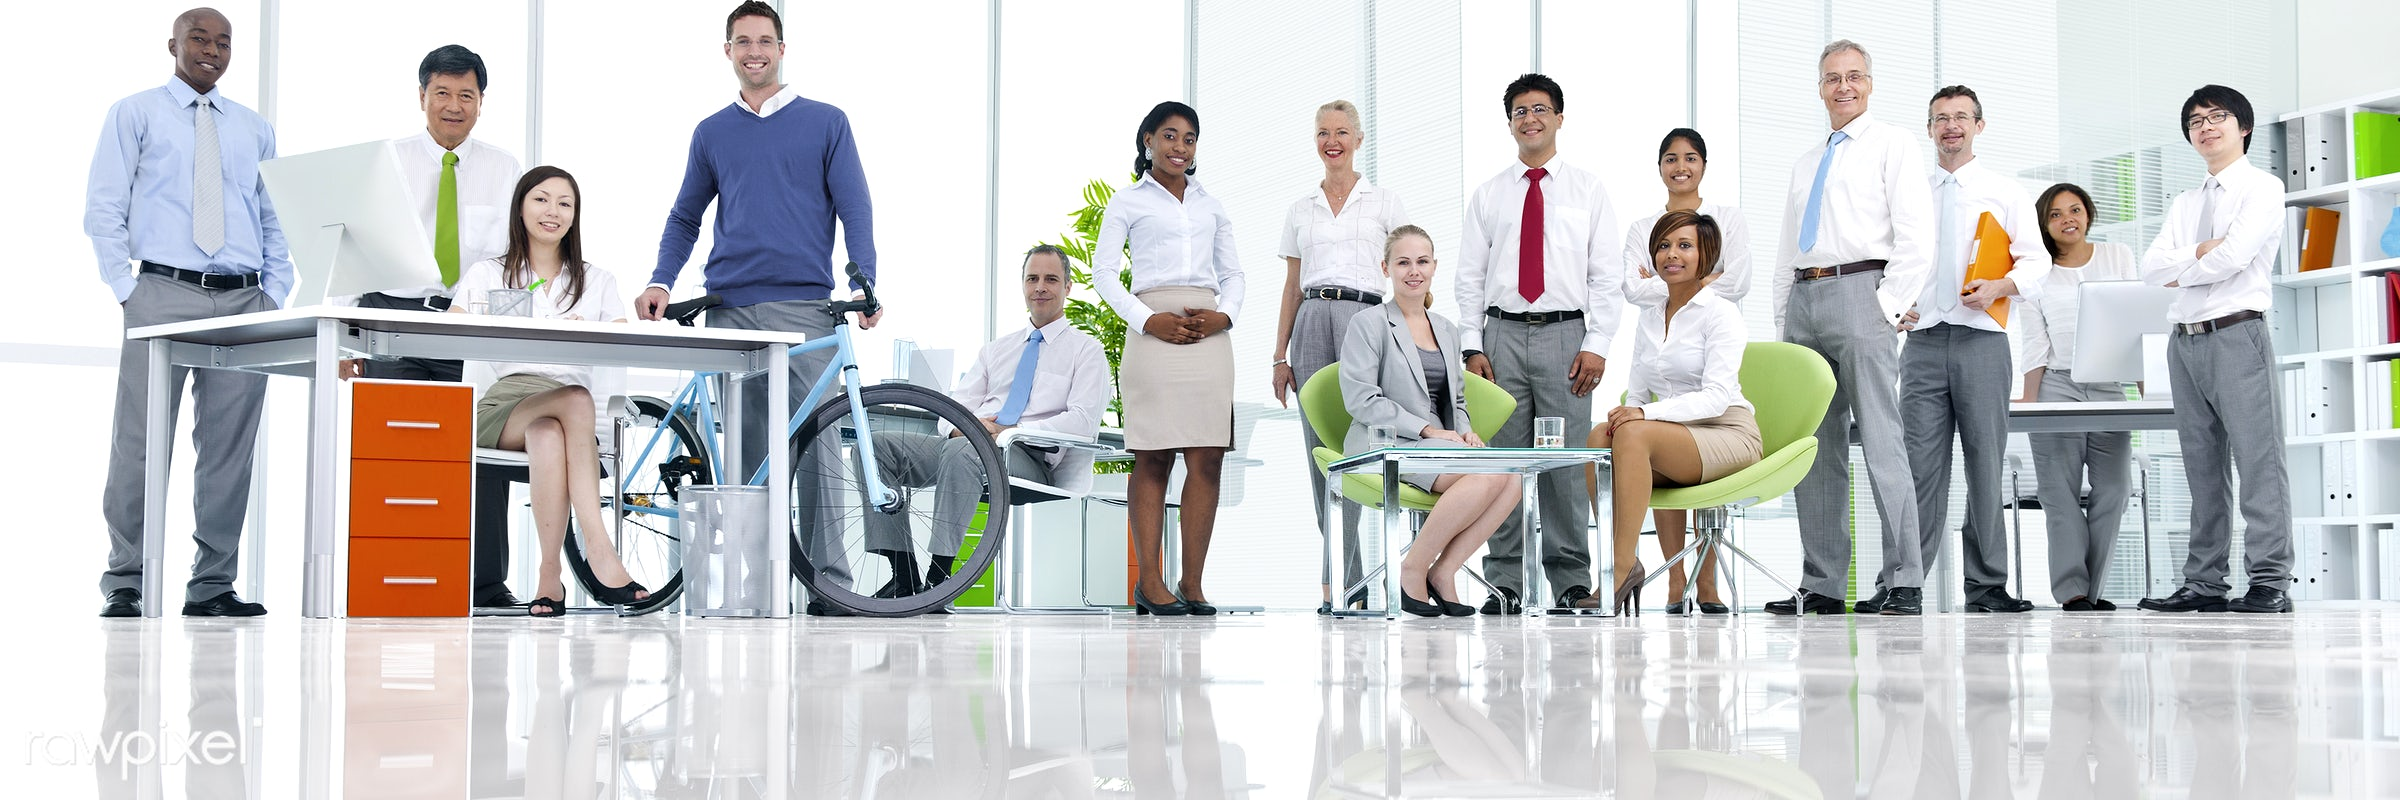 Business people working in a green office - assistant, african descent, asian ethnicity, bicycle, board room, business,...